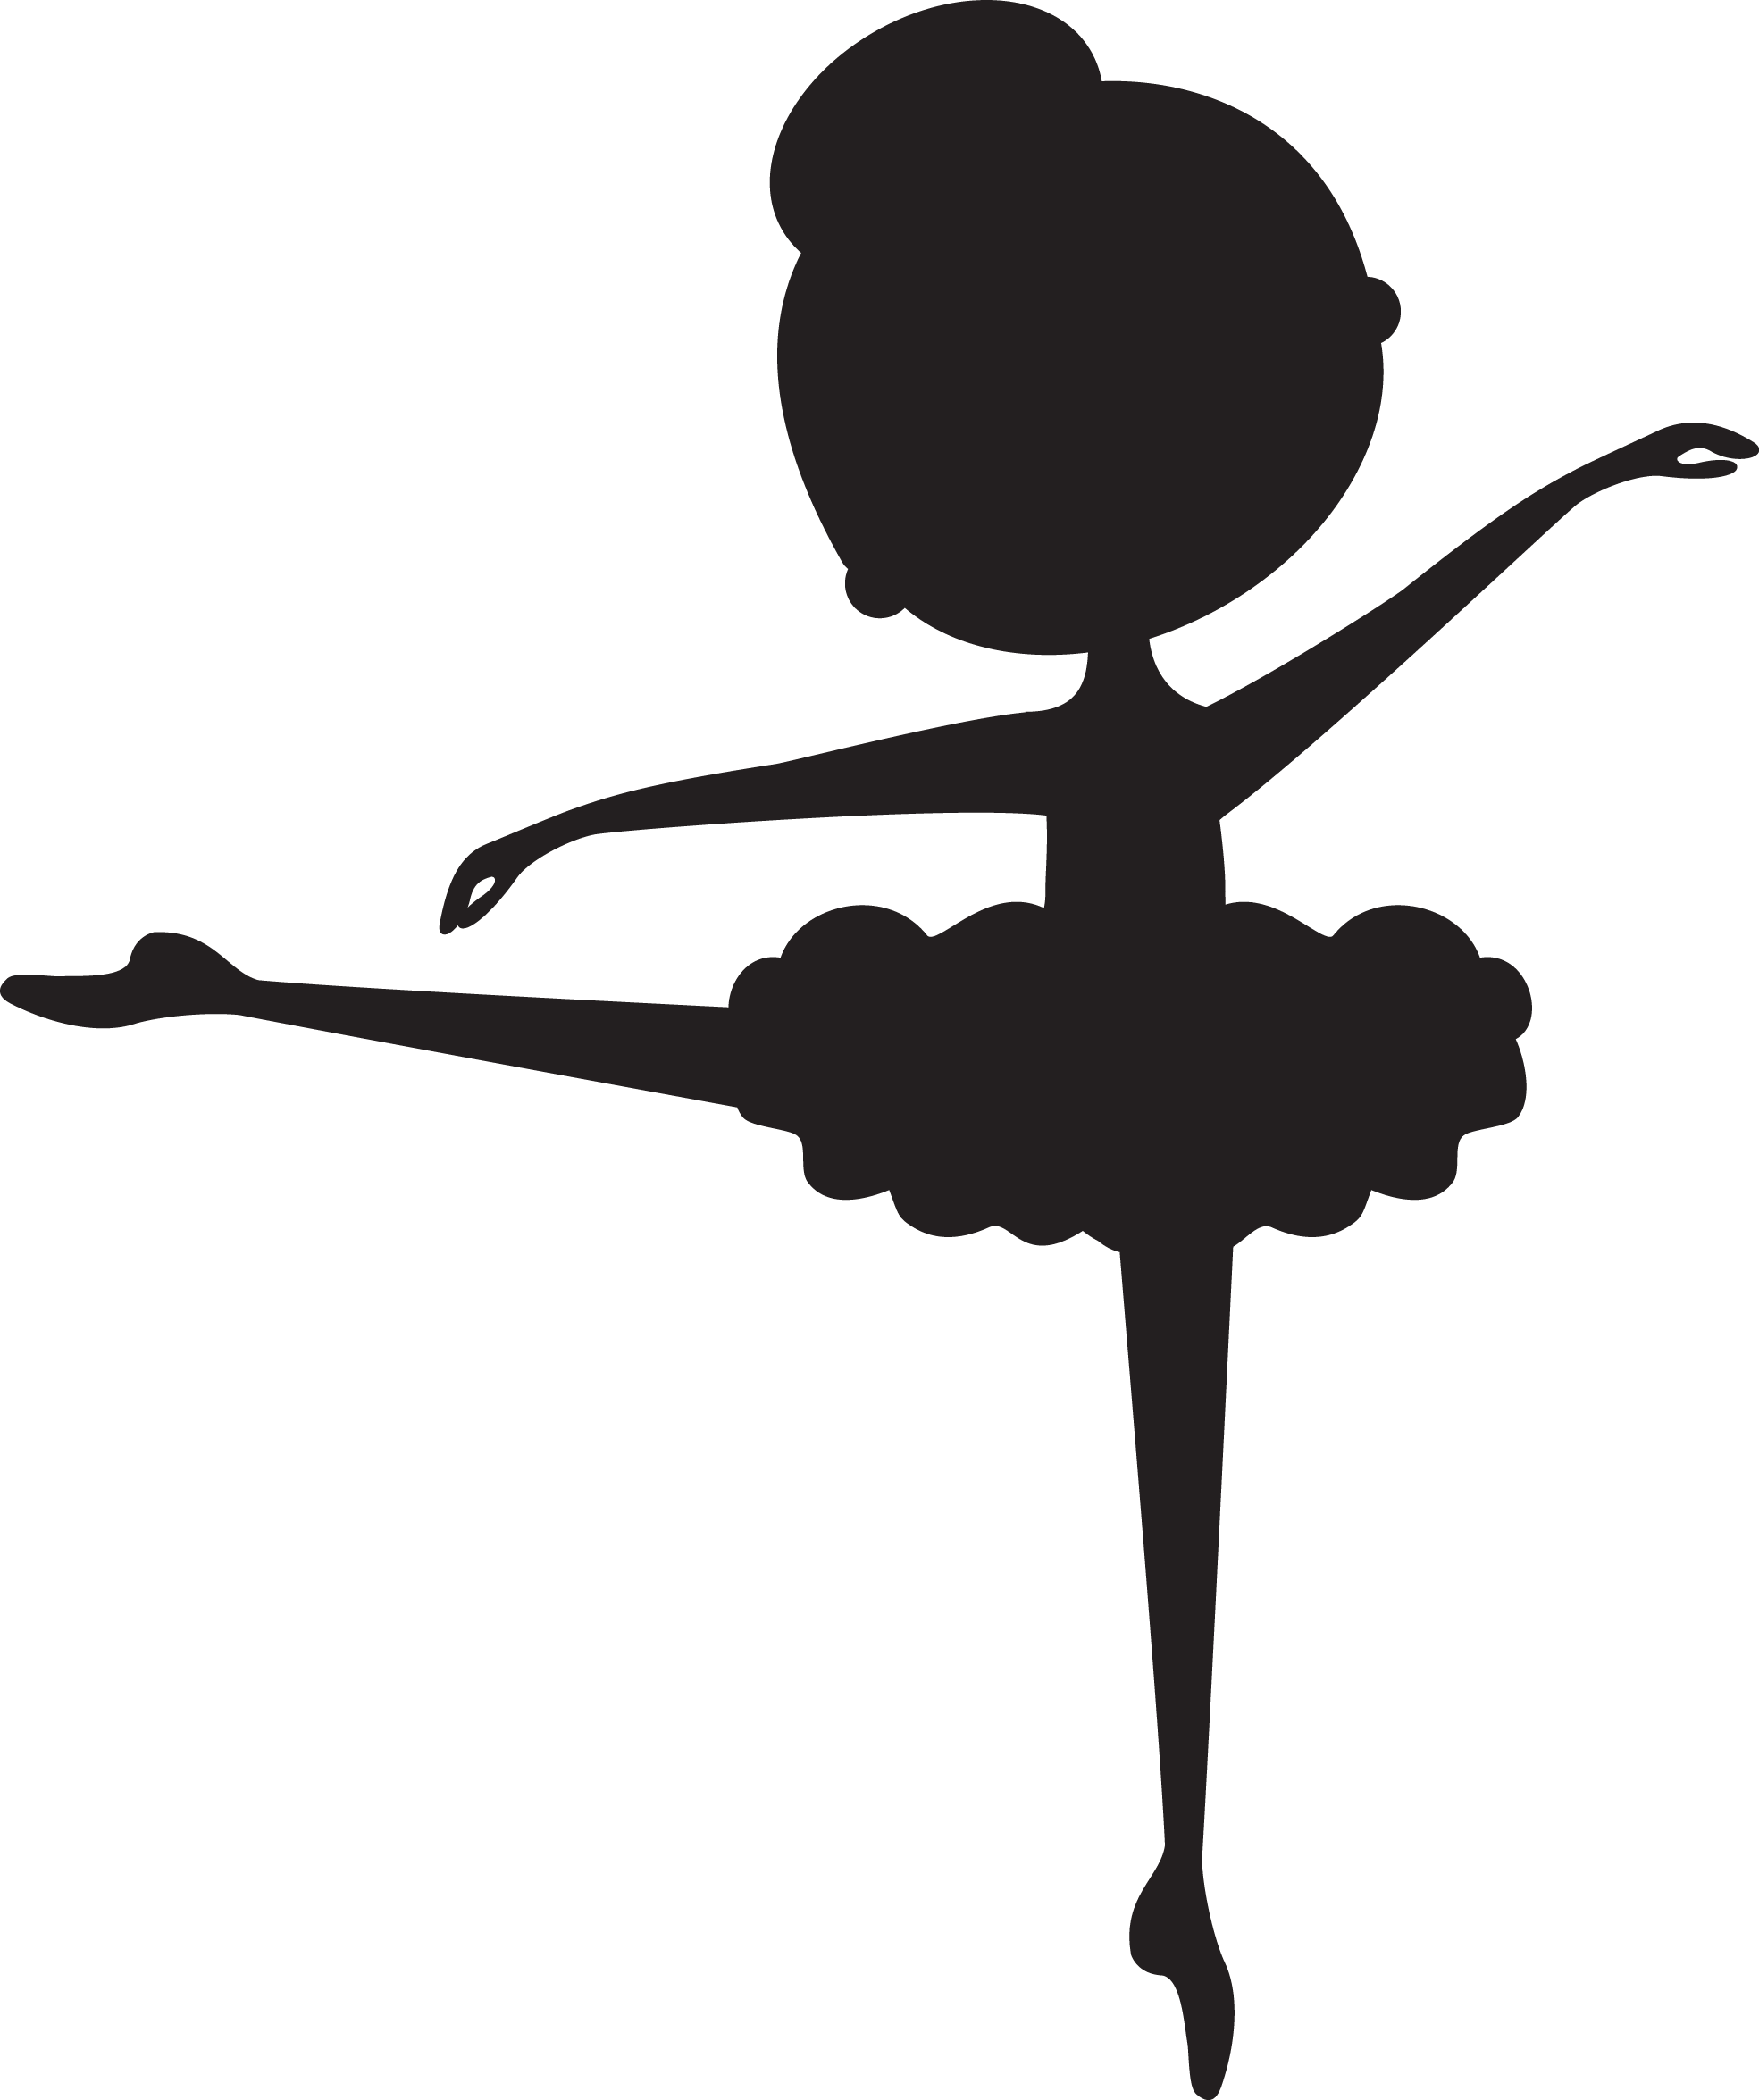 Snowflake ballet clipart vector freeuse download Related image | هاندميد ورد. ورقي | Pinterest | Ballerina, Cricut ... vector freeuse download